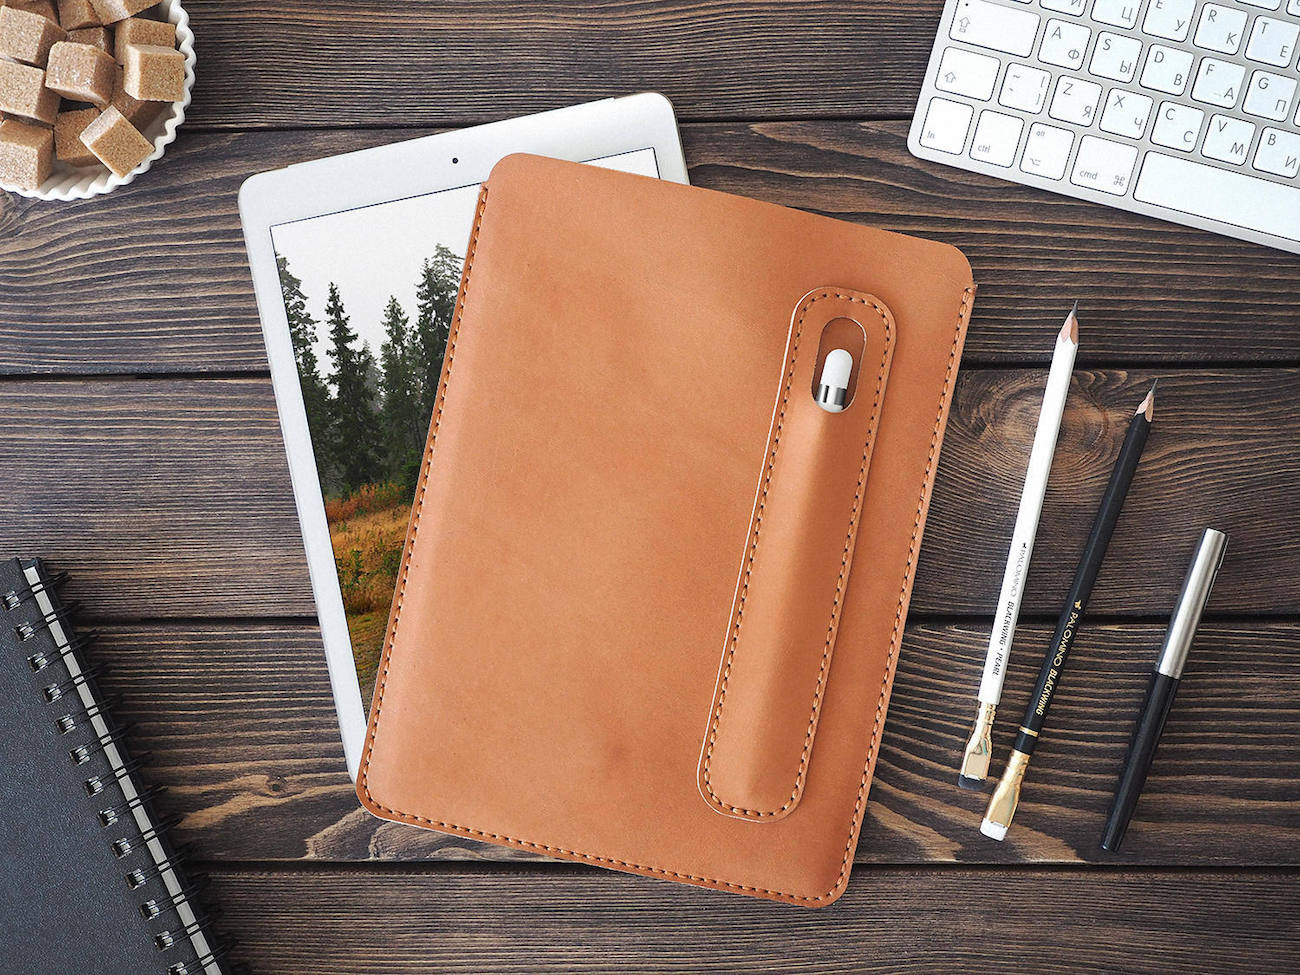 Leather iPad Pro Apple Pencil Case